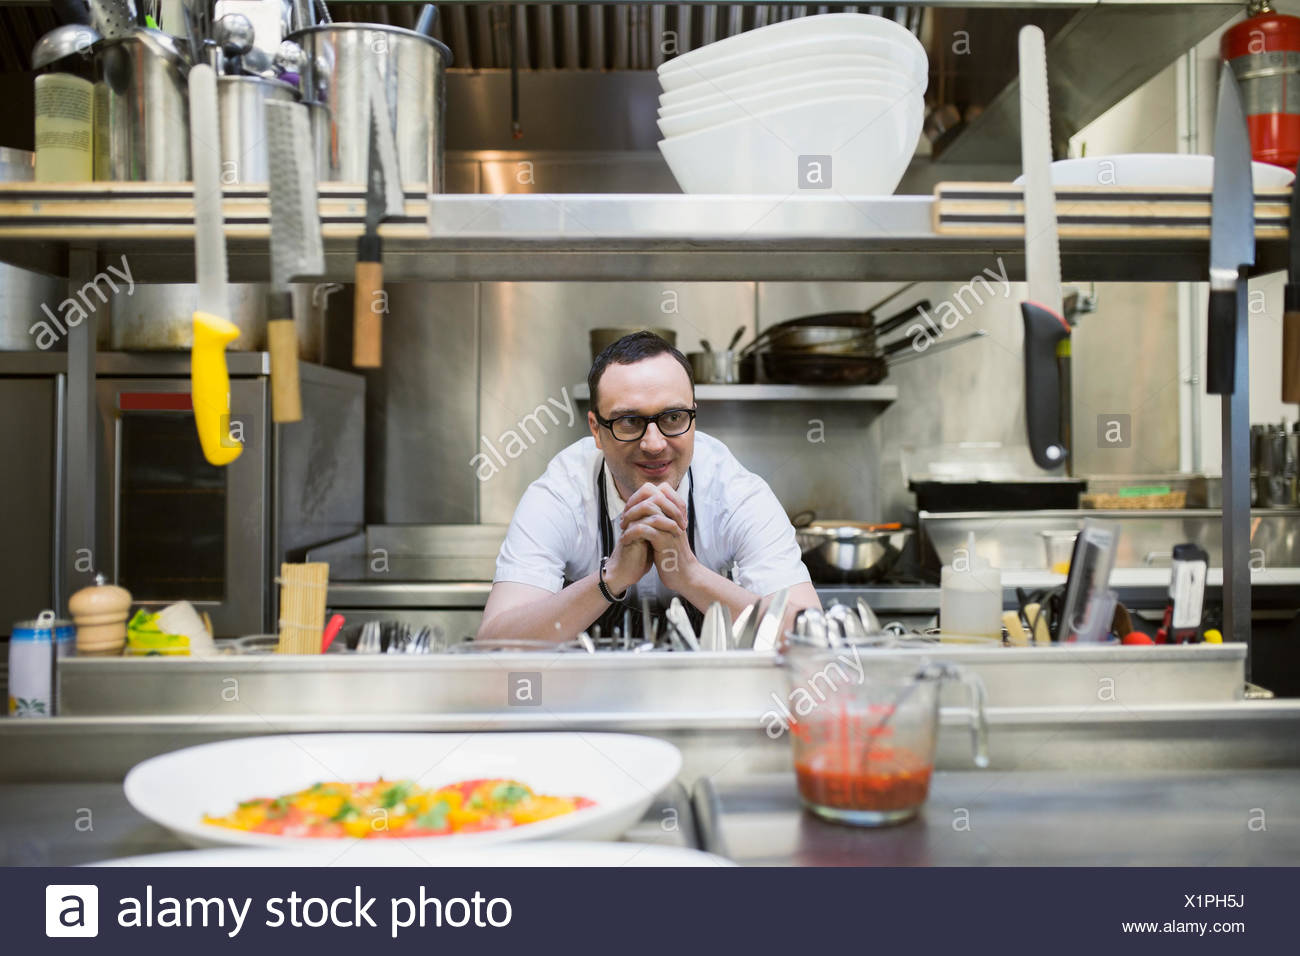 Chef leaning on counter in commercial kitchen - Stock Image